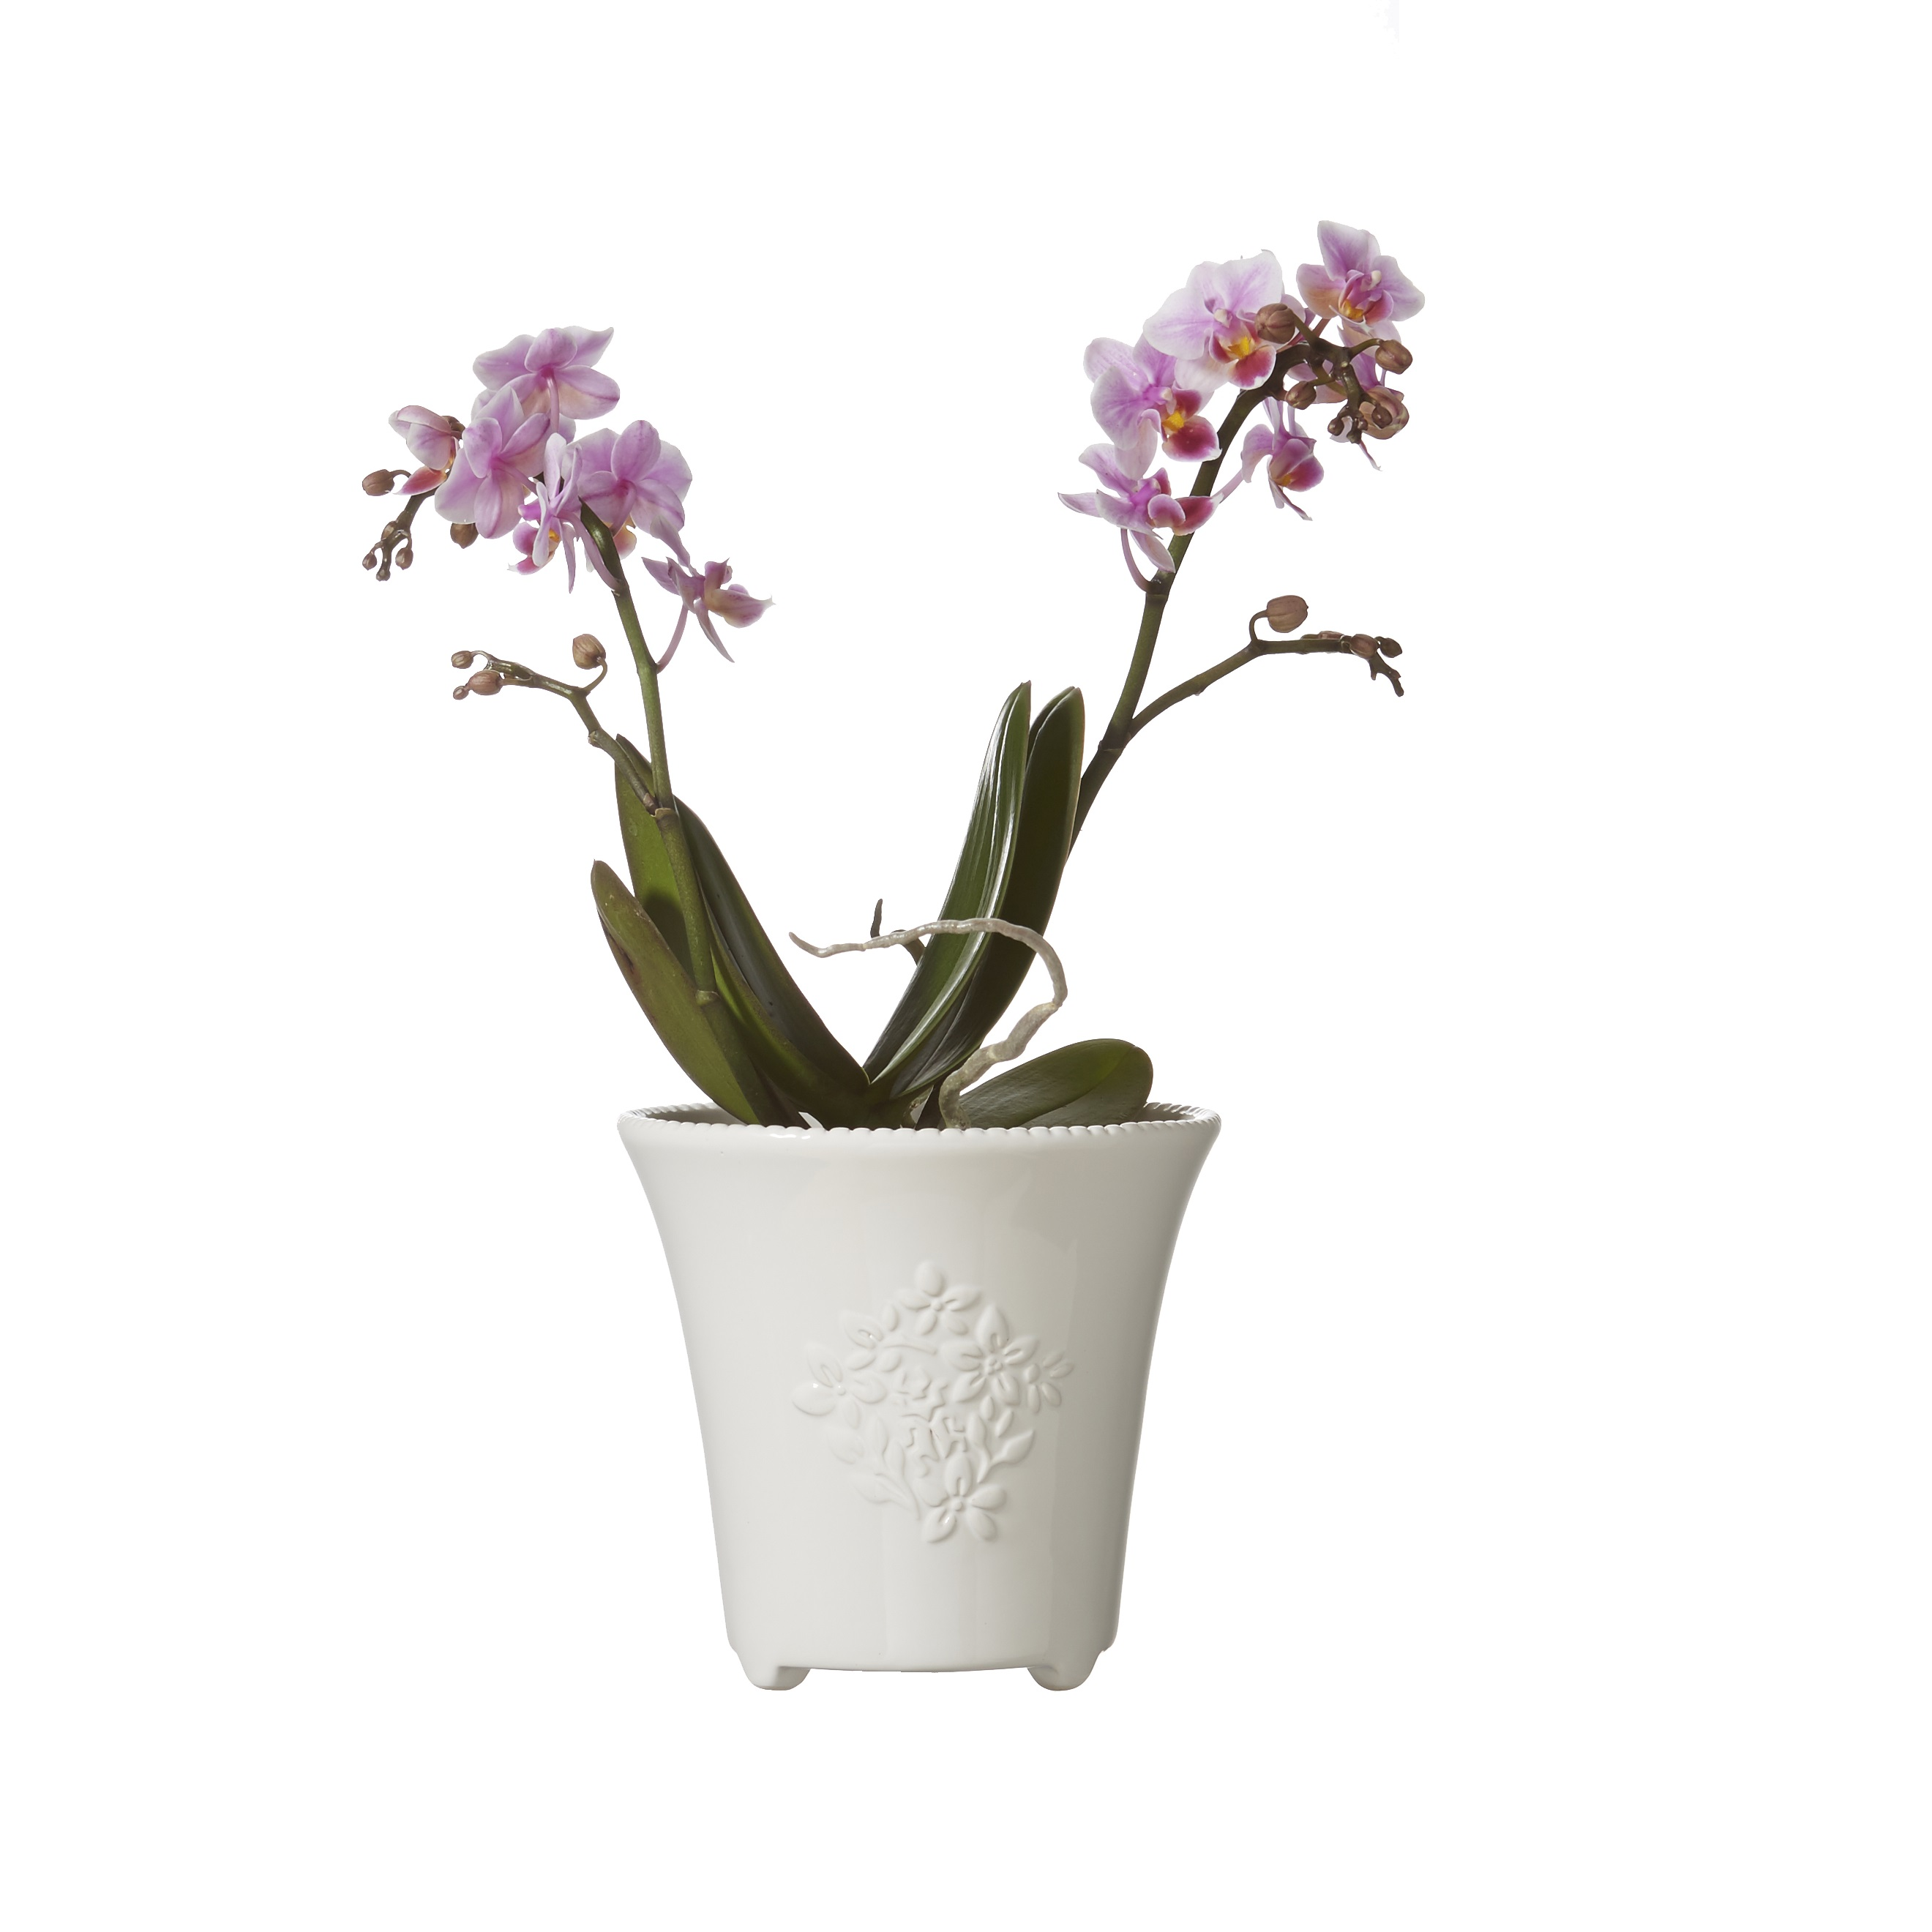 224 & White Sally Small Flower Pot Planter